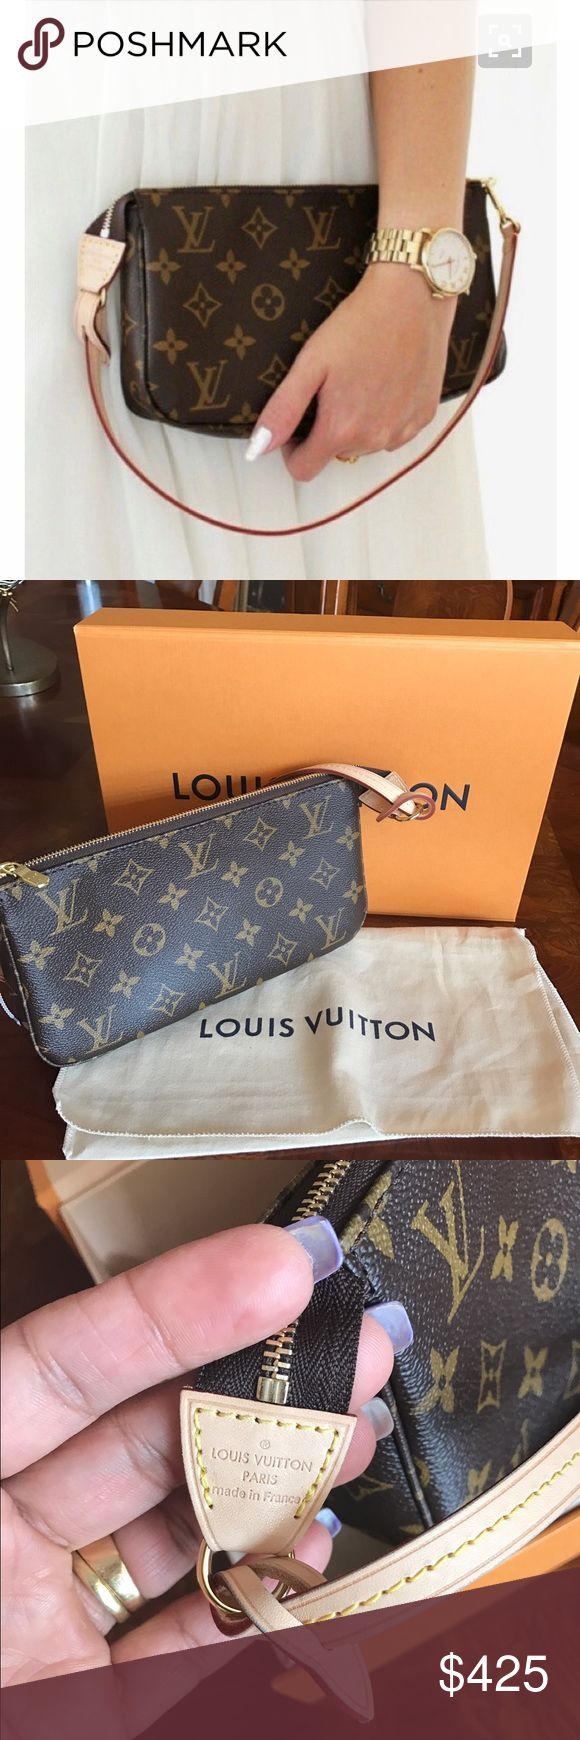 """Louis Vuitton Pochette Clutch Louis Vuitton Pochette Clutch  Always the epitome of iconic style, this interpretation of the Pochette Accessoires can accommodate a Zippy Wallet. In Monogram canvas, it easily carries all the daily necessities. It's like new without tags. I have the box and dust bag. It's an adorable bag that deserves a loving home❤️‼️Size: 9 """" length, 1"""" depth, 6"""" height. ❌No TRADES ❌ Louis Vuitton Bags Clutches & Wristlets"""